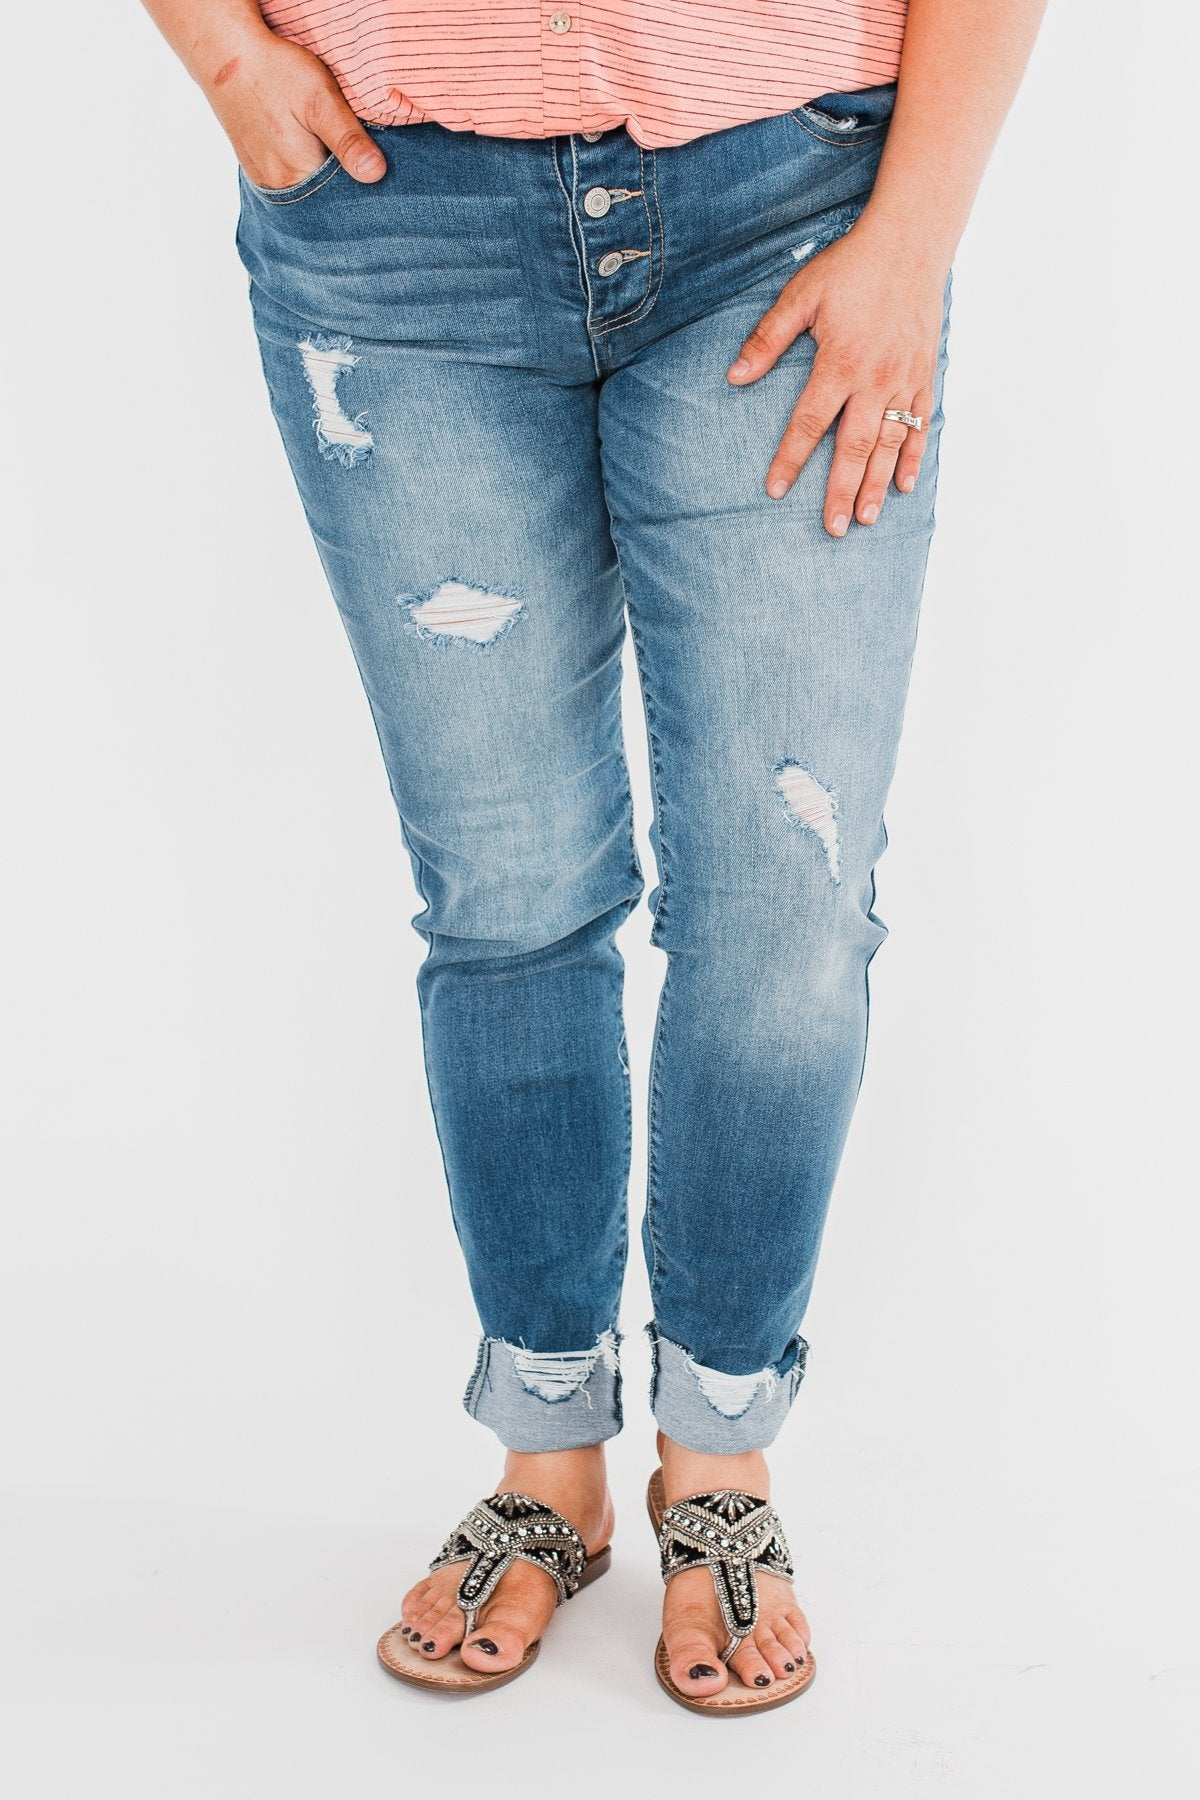 C'est Toi Distressed Button Fly Skinnies- Medium Emily Wash